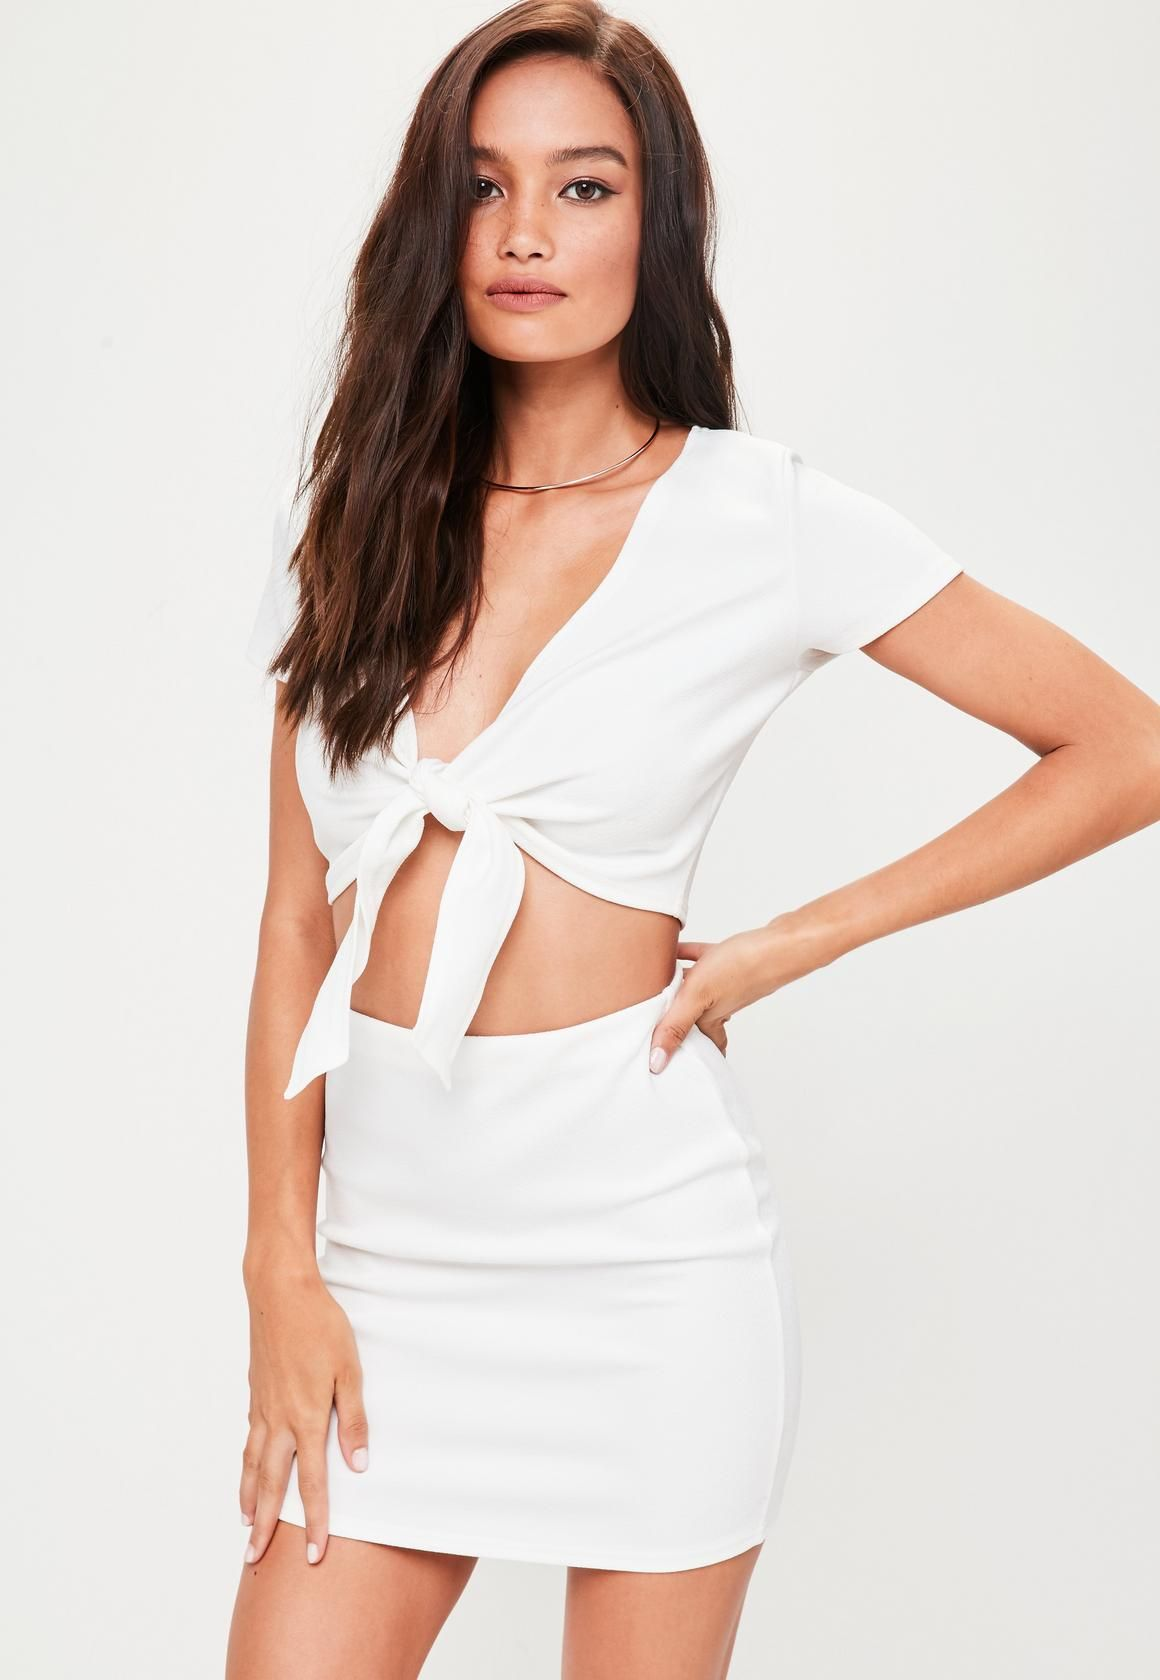 0b0c7aee4 Missguided - Petite White Tie Front Crop Top | MustHaves 2 0 1 8 ...